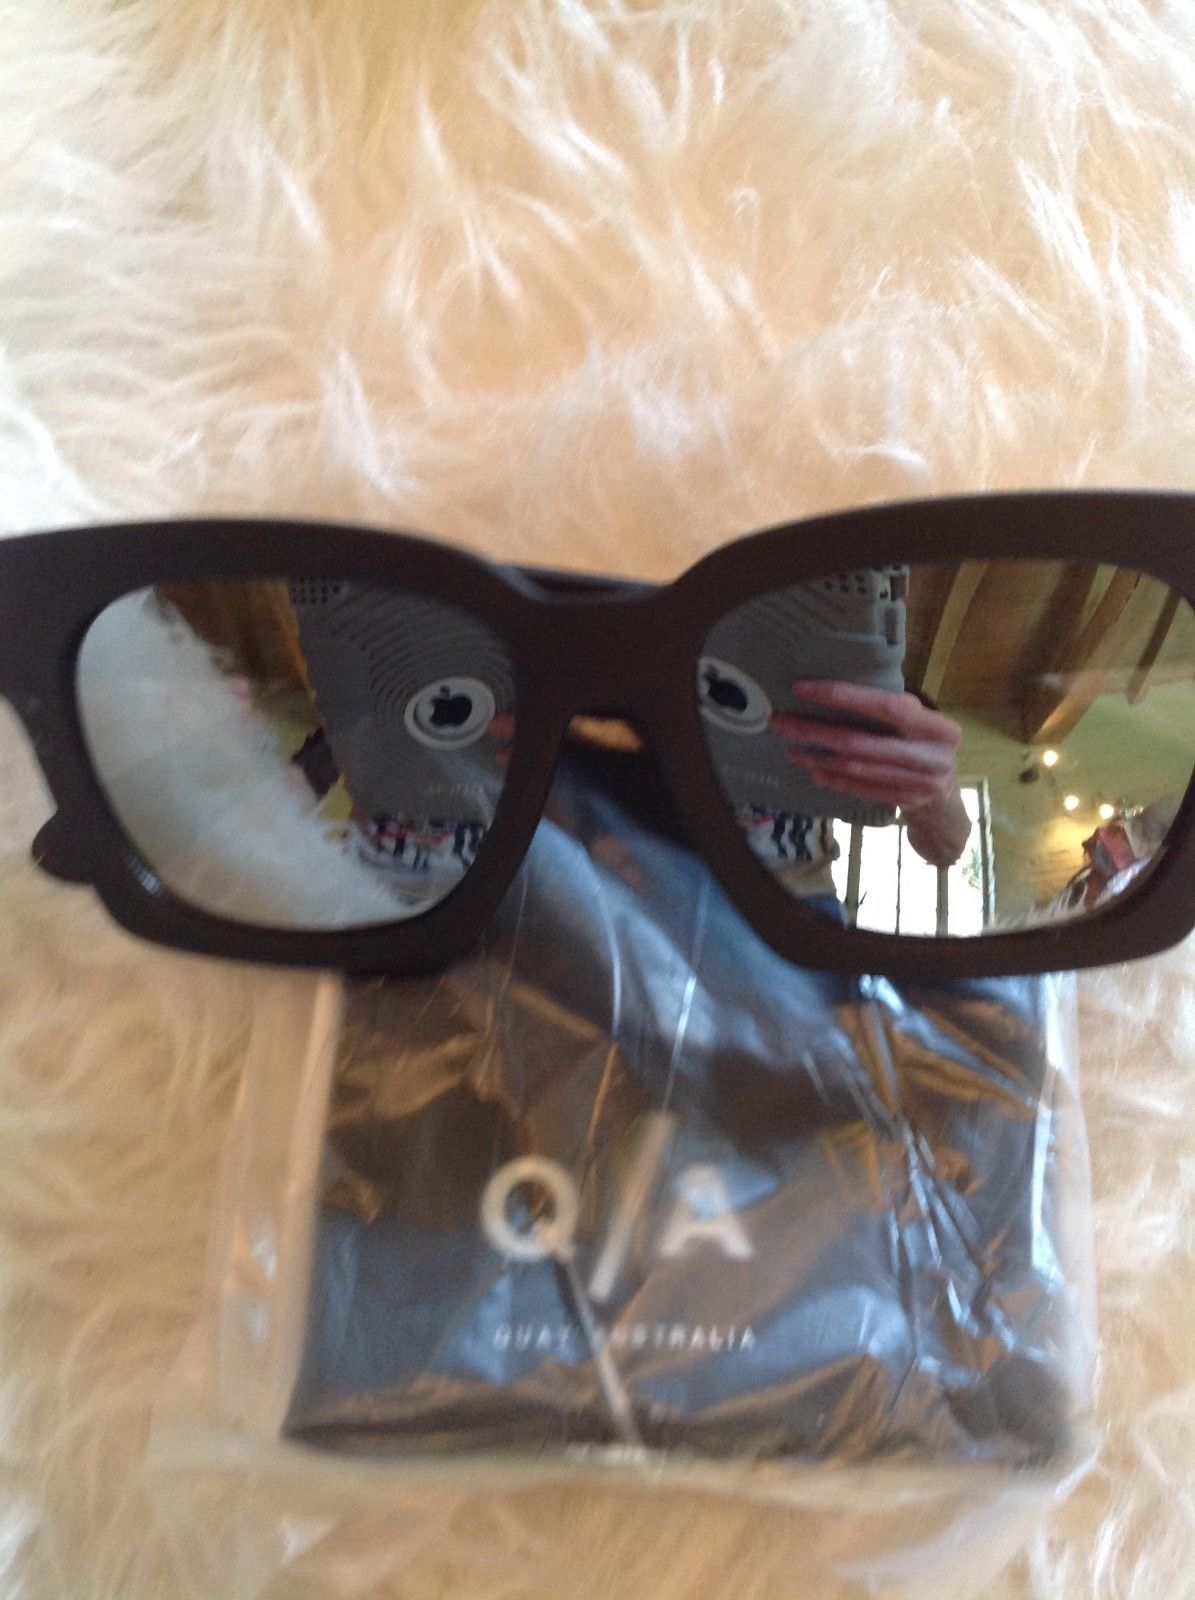 bf4114642d94 🆕💕QUAY midnite runner sunnies black blue mirror sunglasses new in case